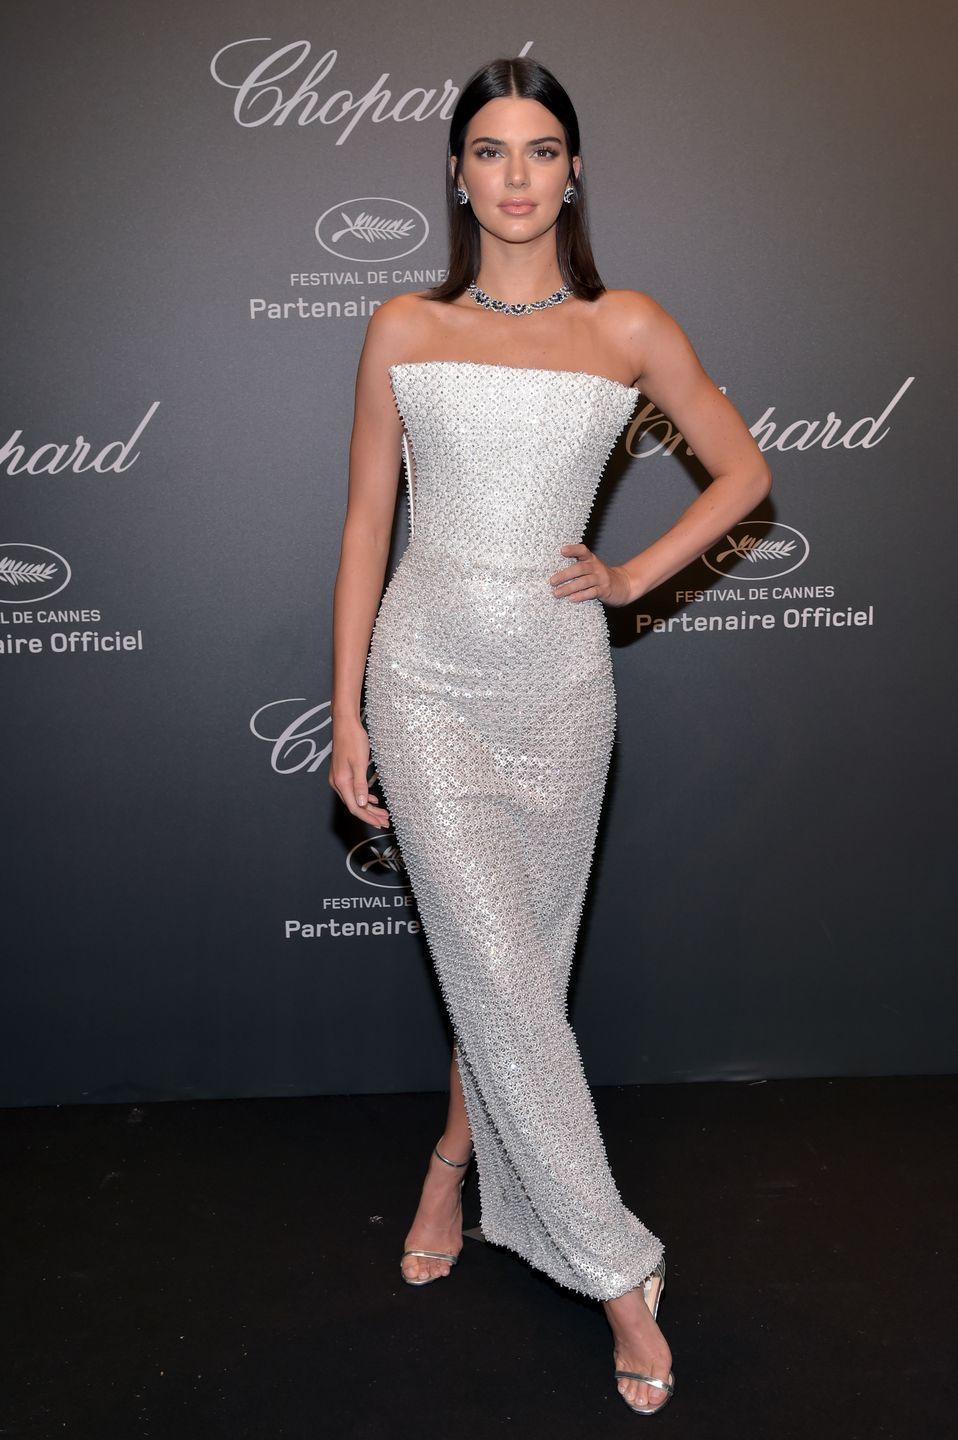 <p>Kendall Jenner went to the Chopard 'Space' party dressed like the most glorious extra-terrestrial in Ralph & Russo Spring 2017 Couture and Chopard gems.</p>